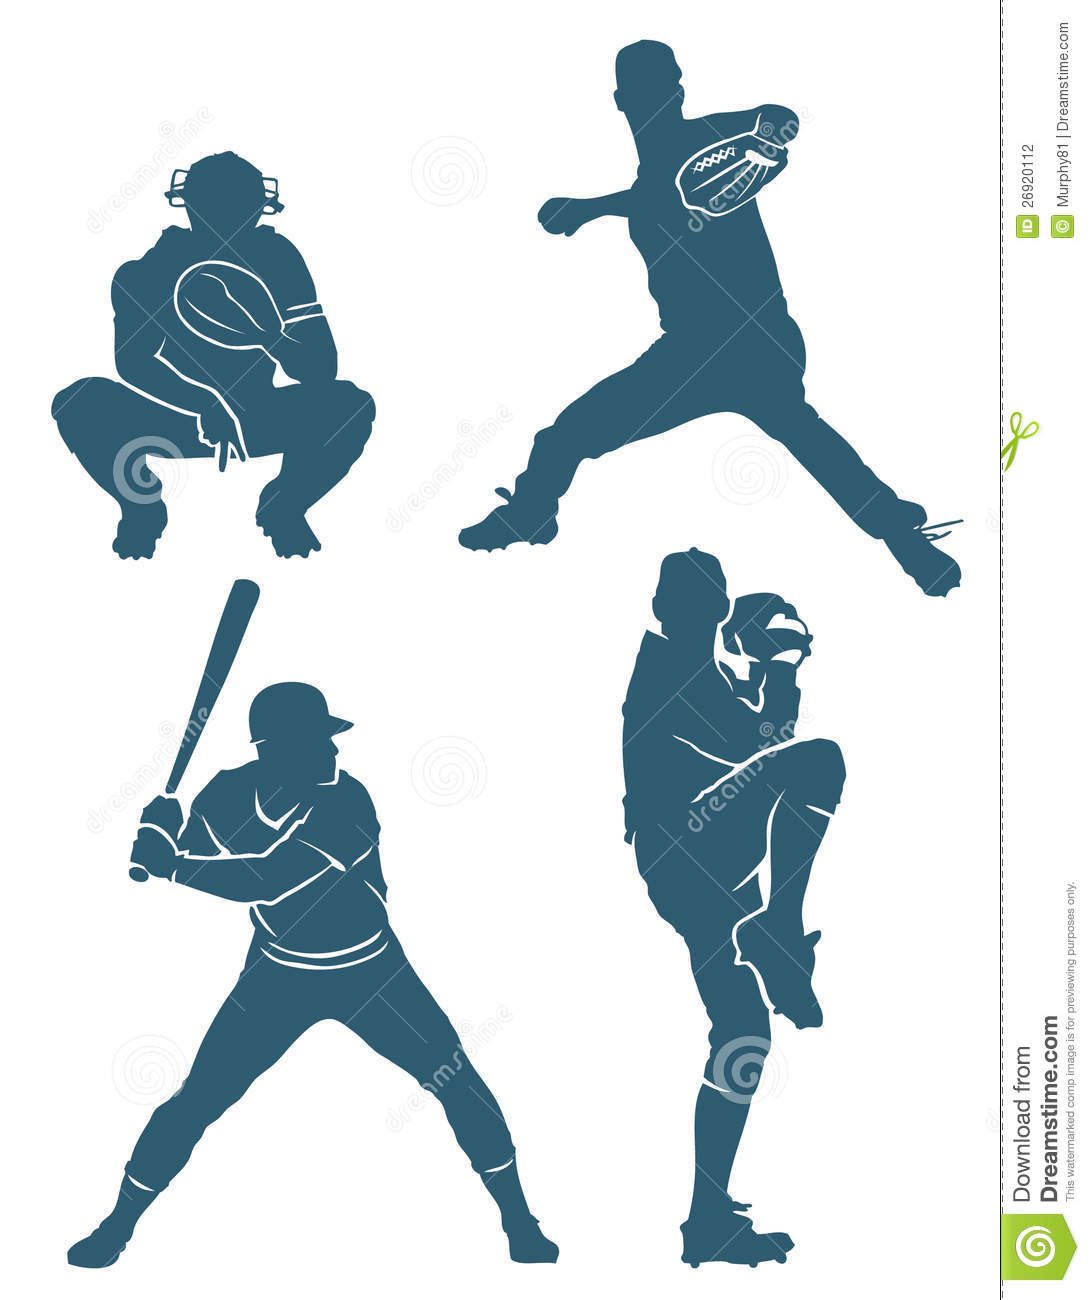 Baseball Positions Stock Photography - Image: 26920112